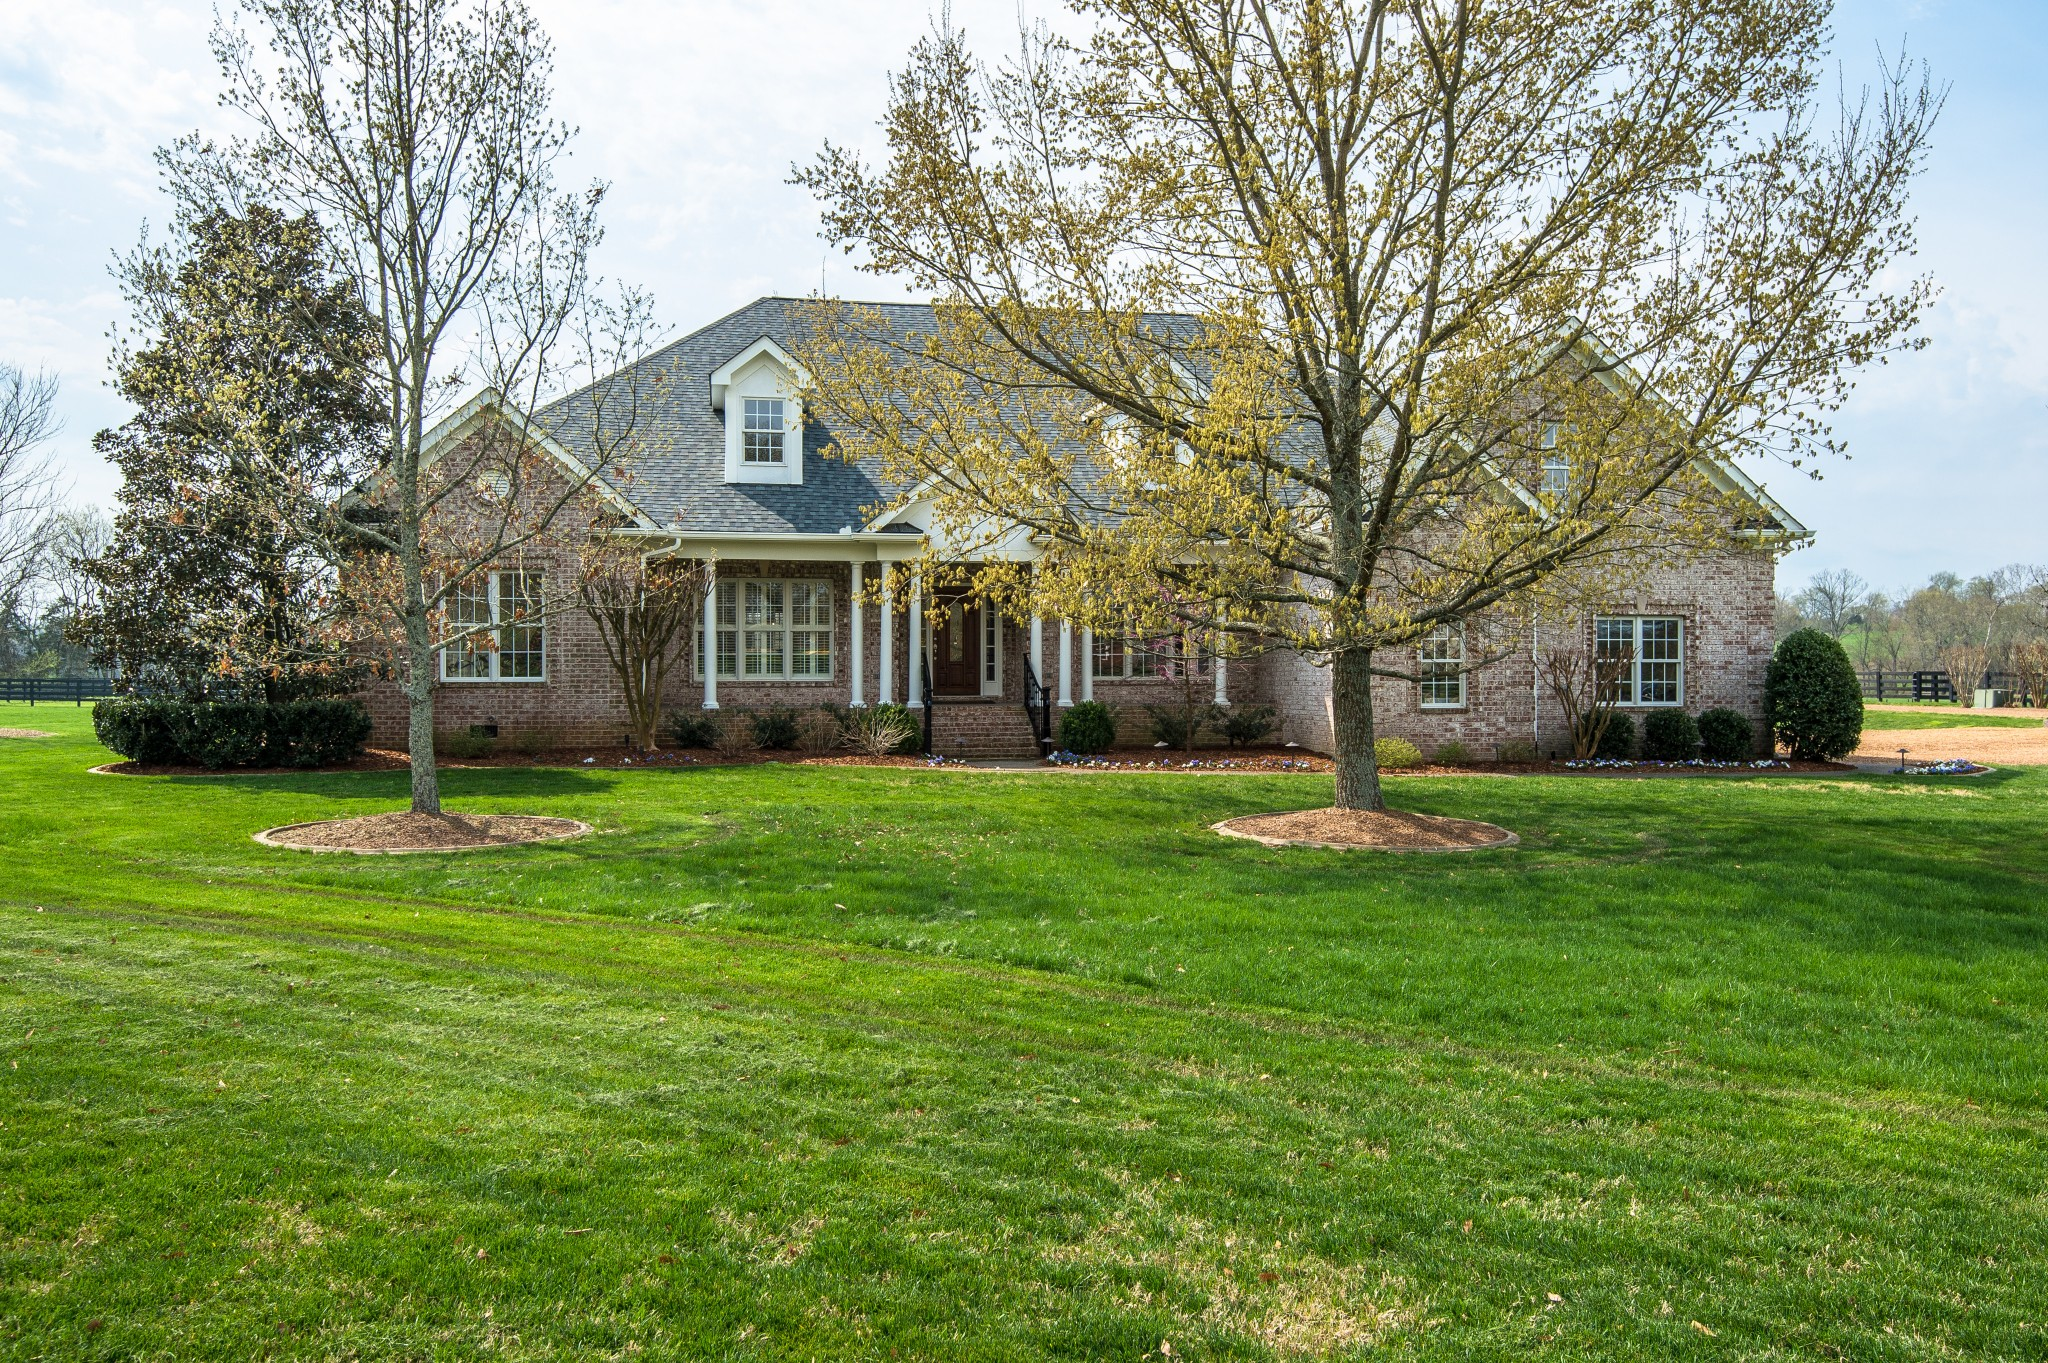 Fabulous,gated,quality custom brick on 23+ level fenced/cross-fenced acres mins from !65,840 and Cool Springs.Offering a 4-stall Morton barn w/heated & cooled half bath, water heater, utility connections plus heated/cooled workshop/mancave/partyroom House has new Int/ext paint, new roof,a stunning 28x20 screen porch,gourmet granite kitchen w/Thermador gas range,glistening hardwoods throughout.Expansive Mstr w/deep trey ceiling & crown moldings,9' ceilings,storm shelter,solar panels & more!